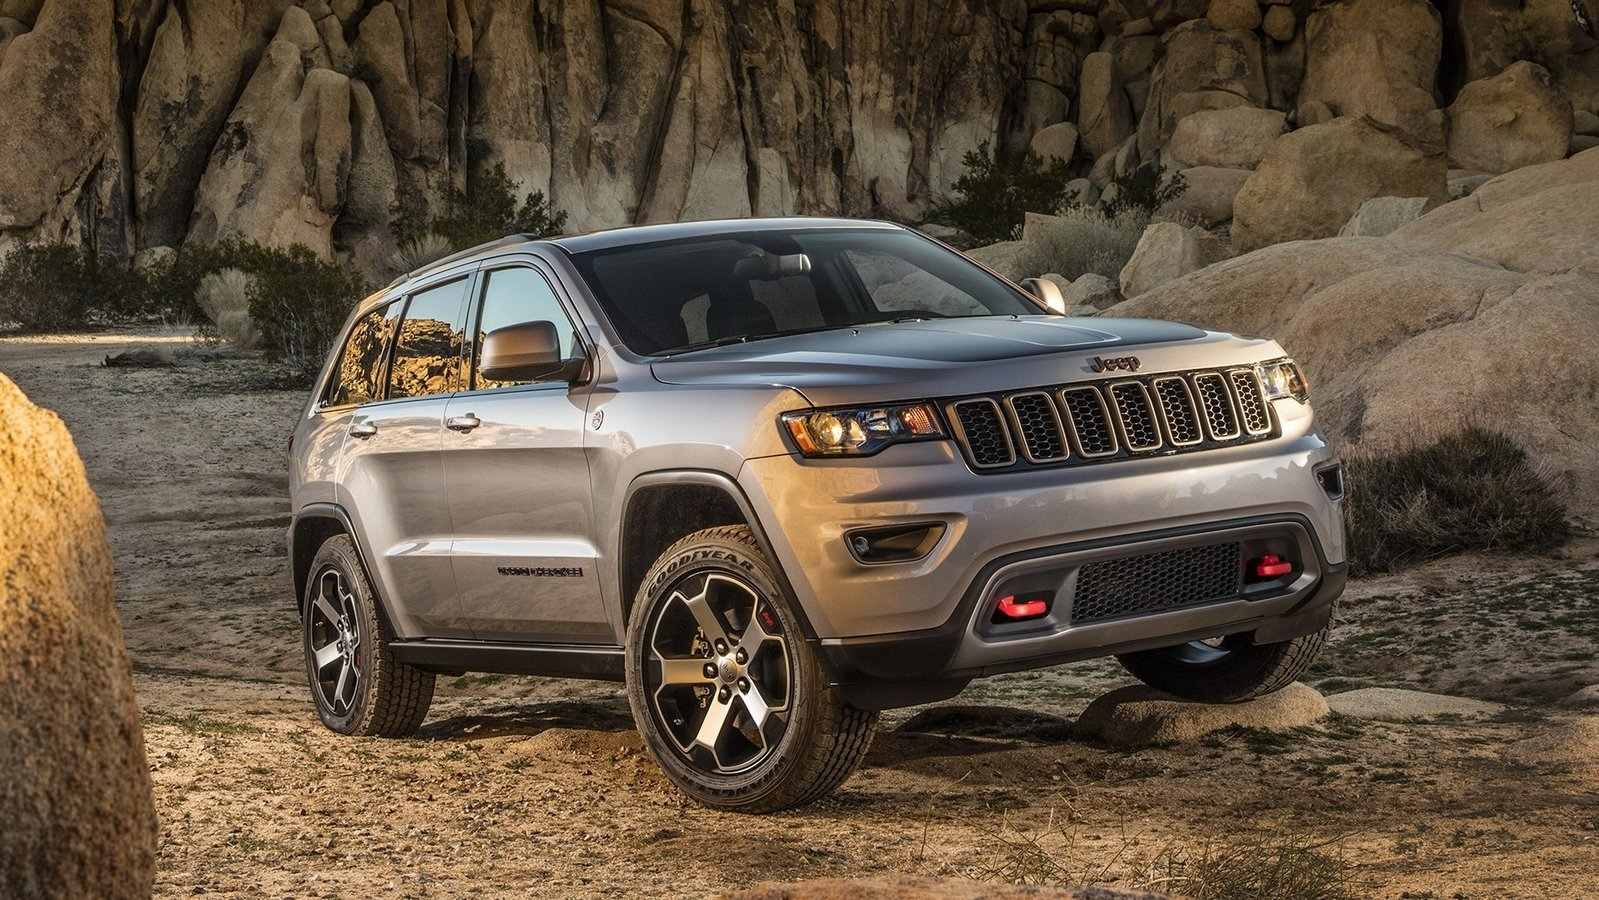 2017 jeep grand cherokee trailhawk picture 670630 car review top speed. Black Bedroom Furniture Sets. Home Design Ideas